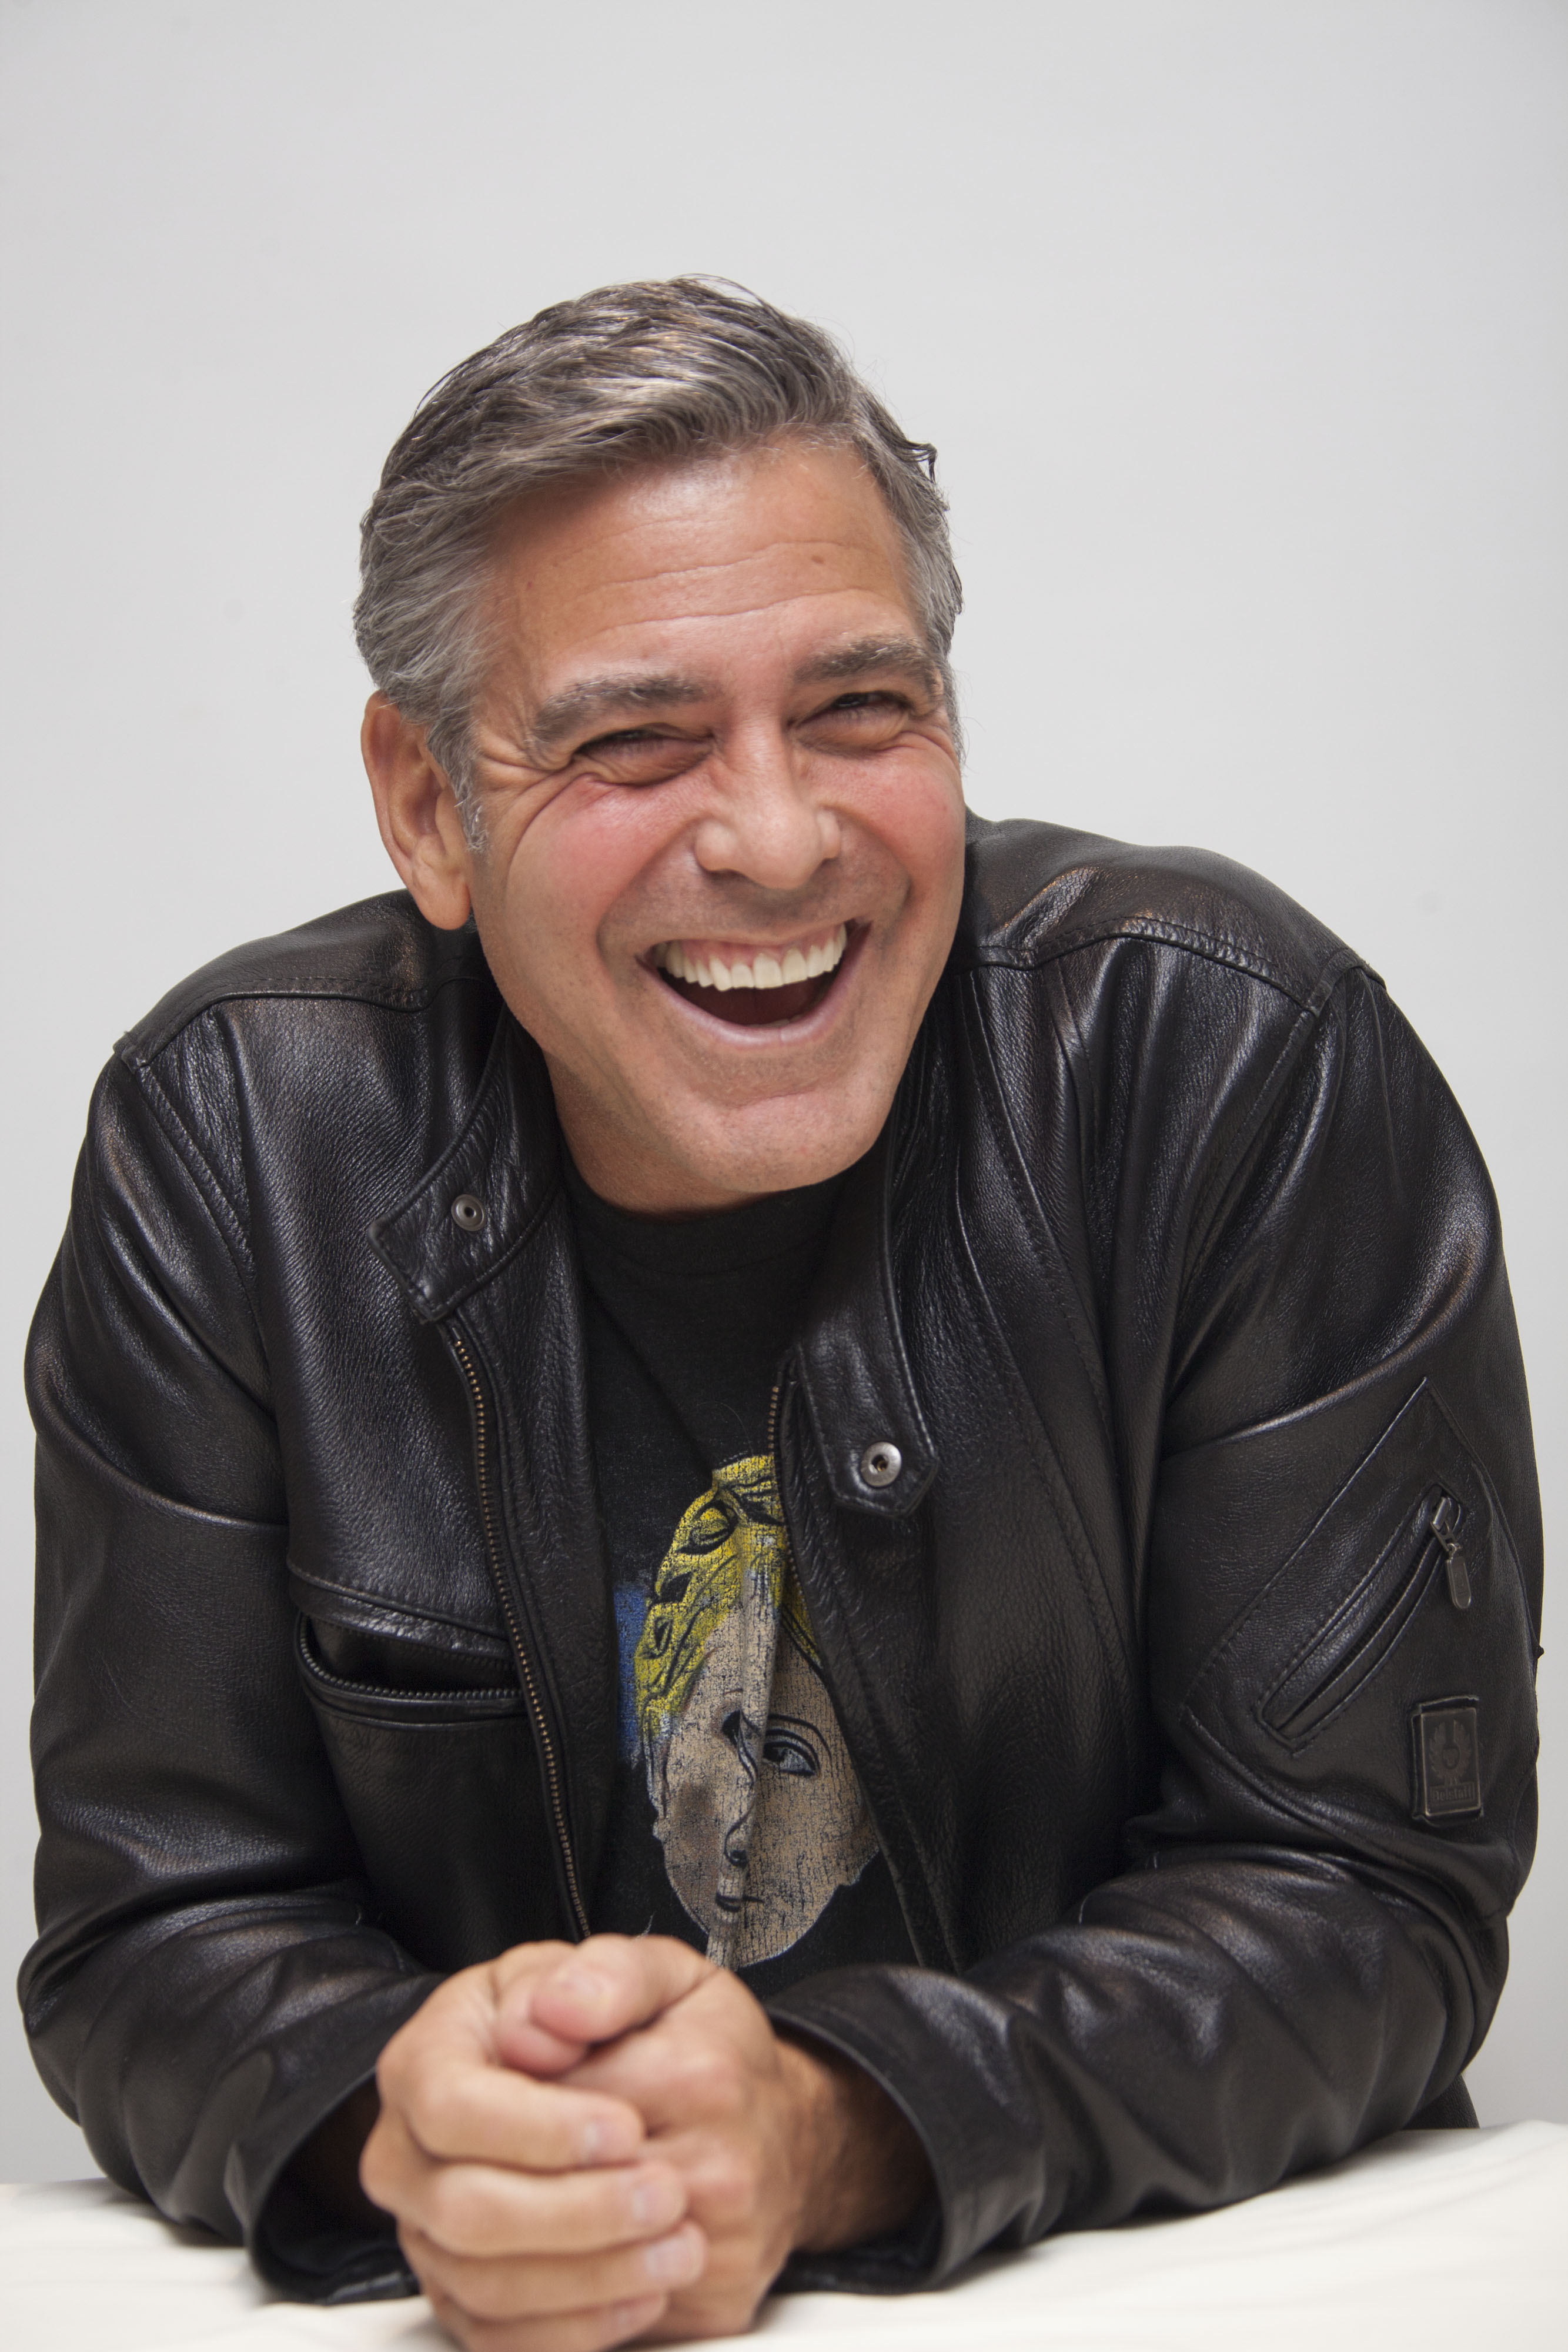 Clooney laughing in a black leather jacket